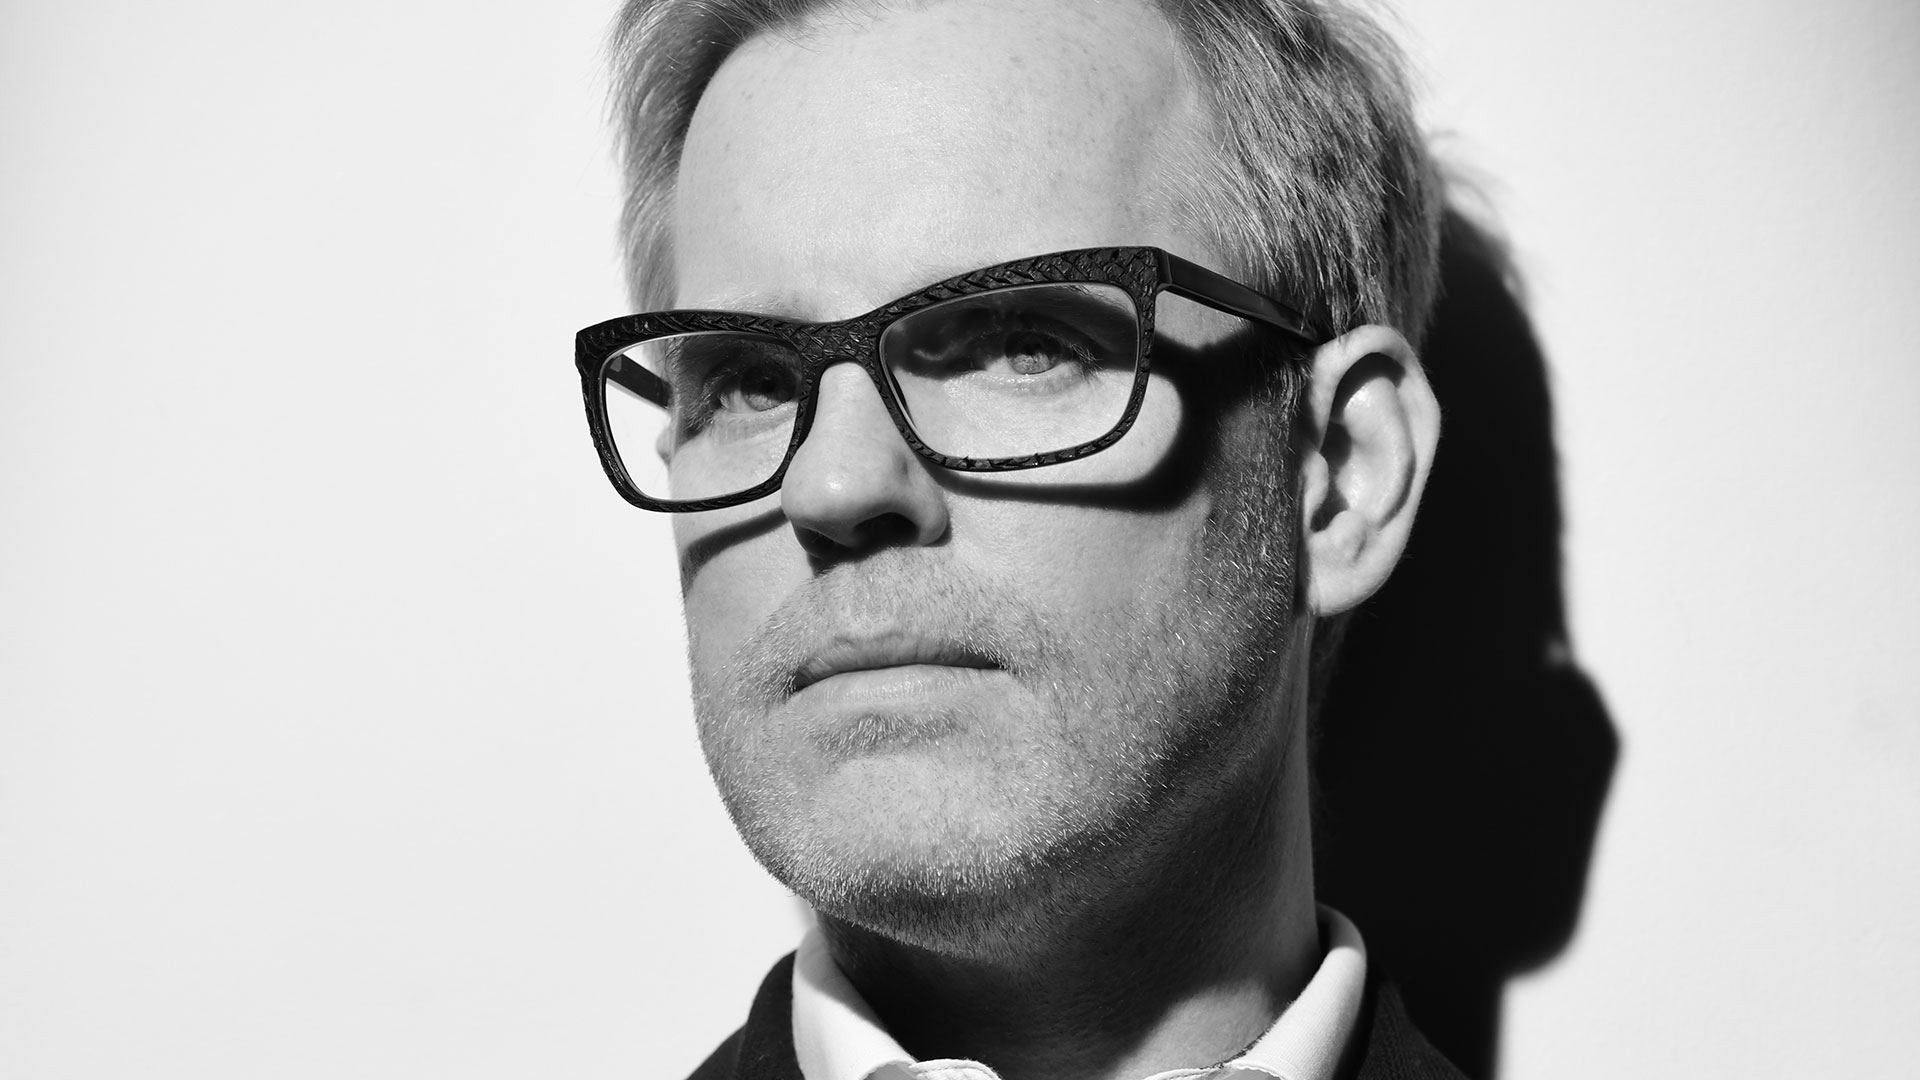 British eyewear designer Tom Davies